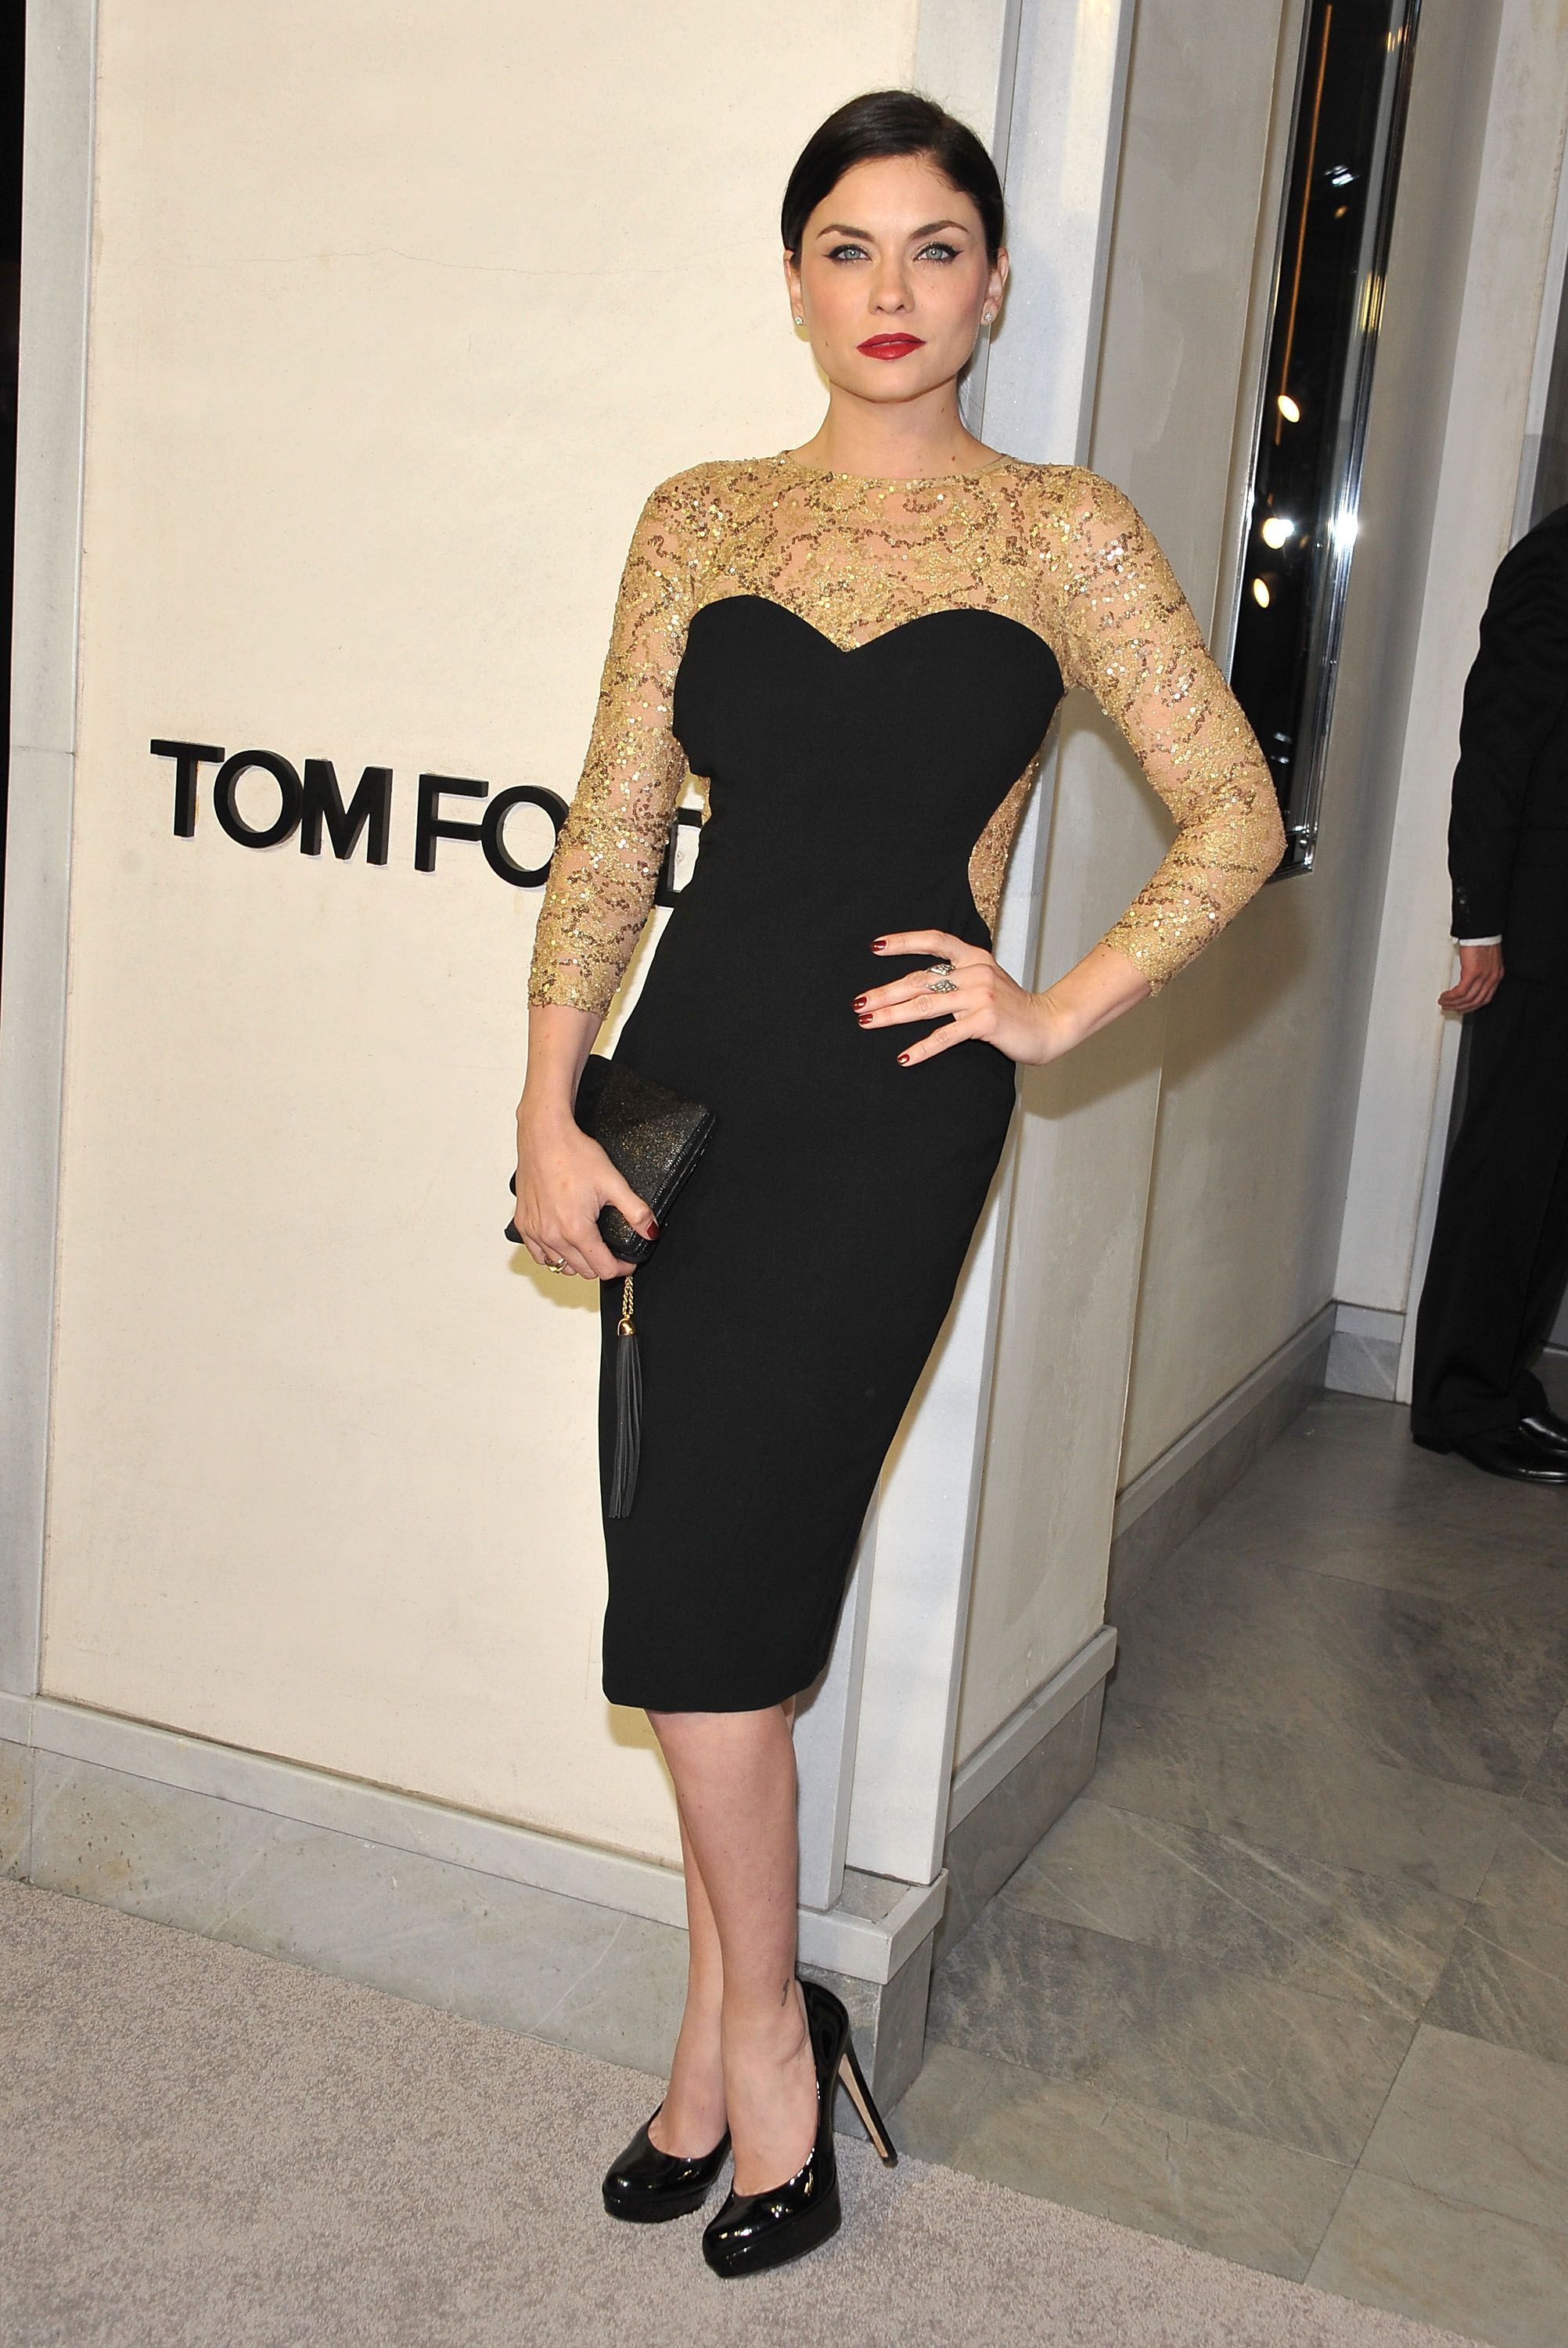 Jodi Lyn O'Keefe attends Tom Ford's cocktail event in support of Project Angel Food in 2013 | Source: Getty Images